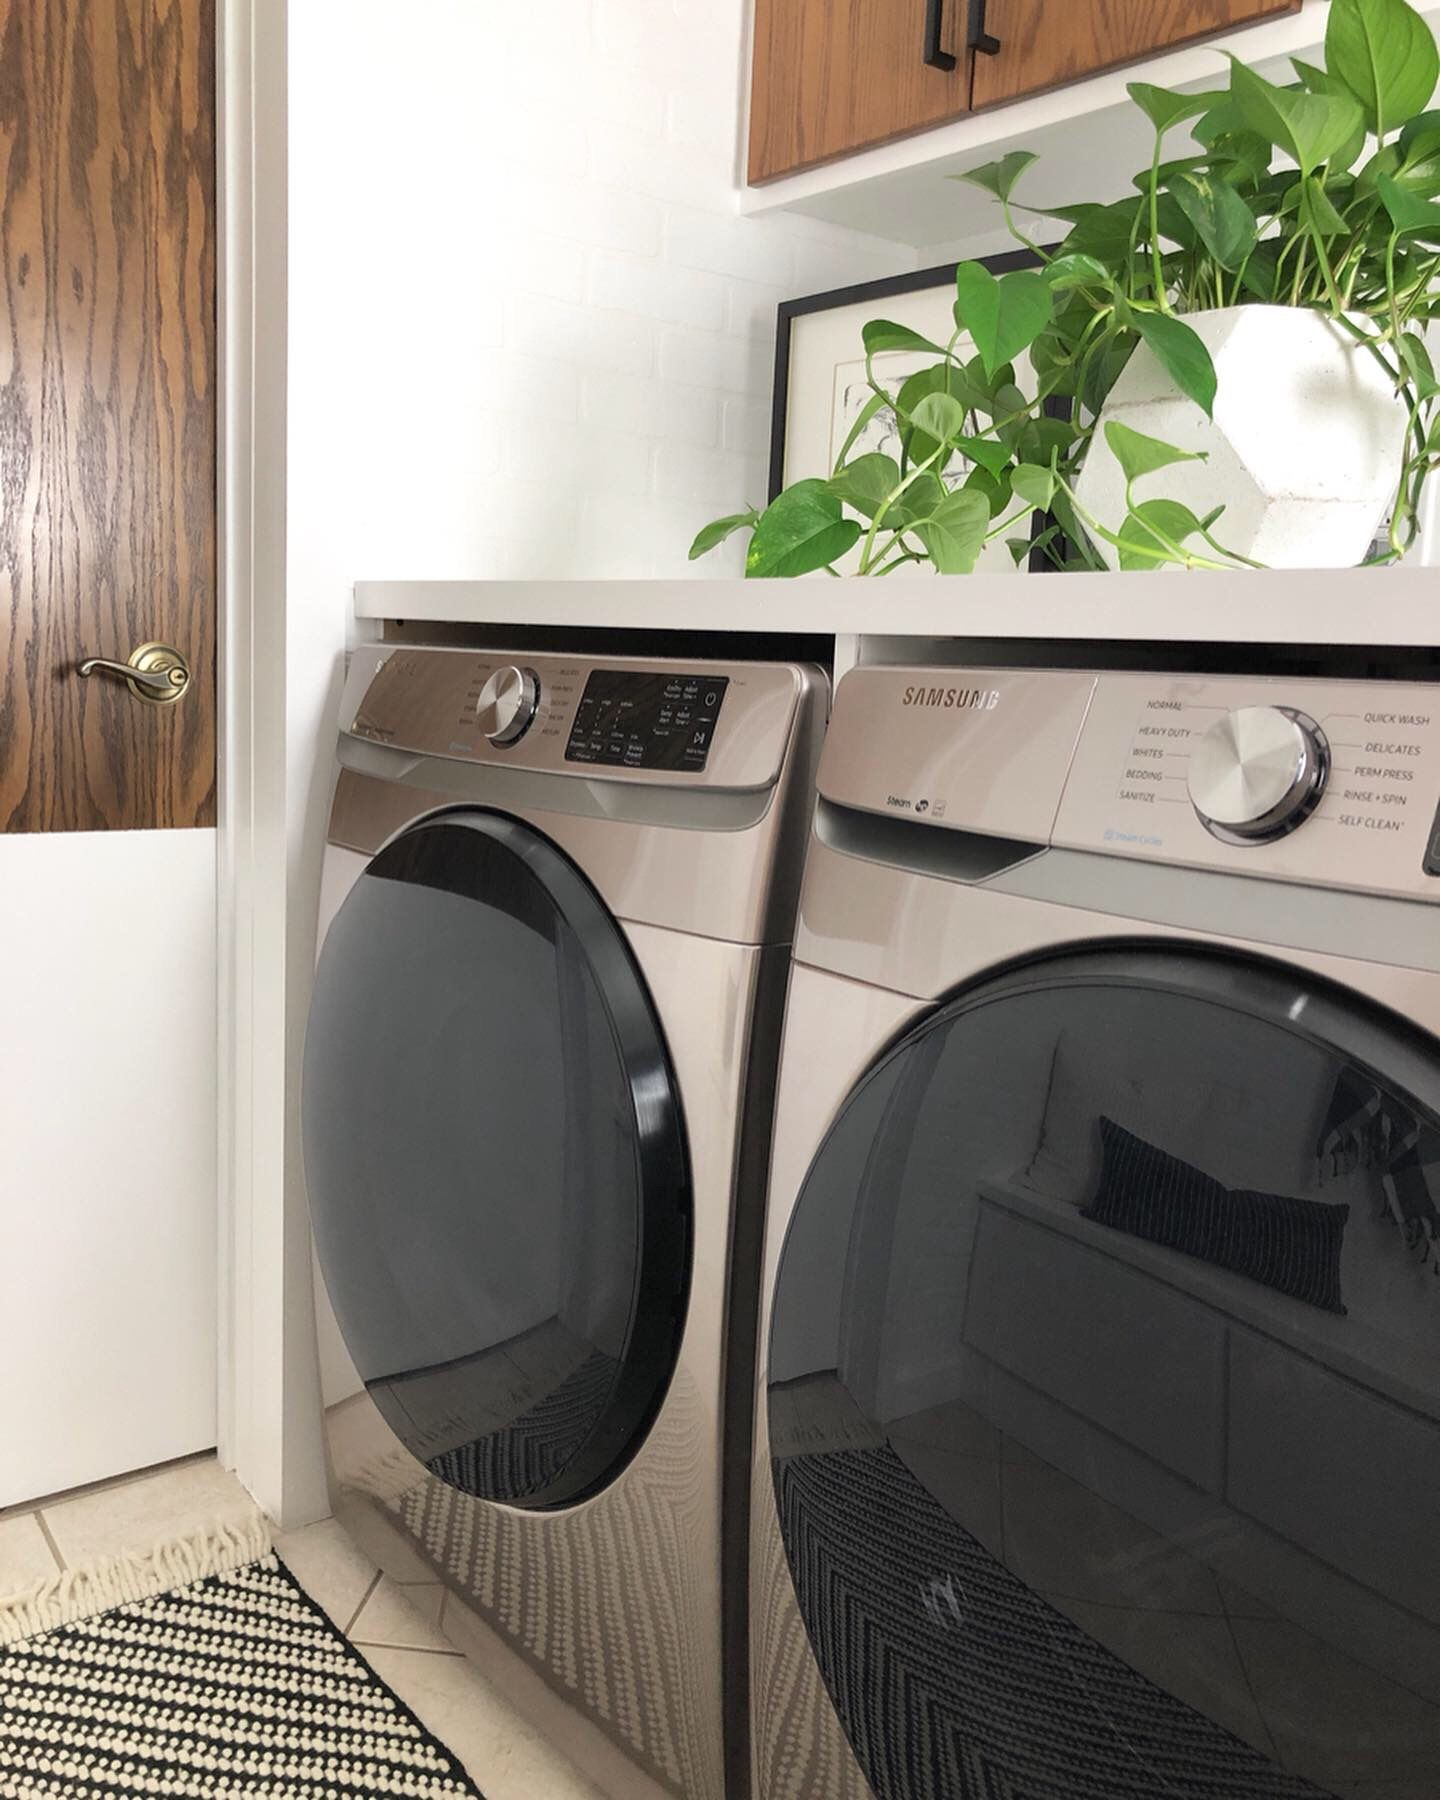 New Champagne Color Washer And Dryer From Samsung Samsung Appliances Laundry Room Remodel Laundry Room Decor